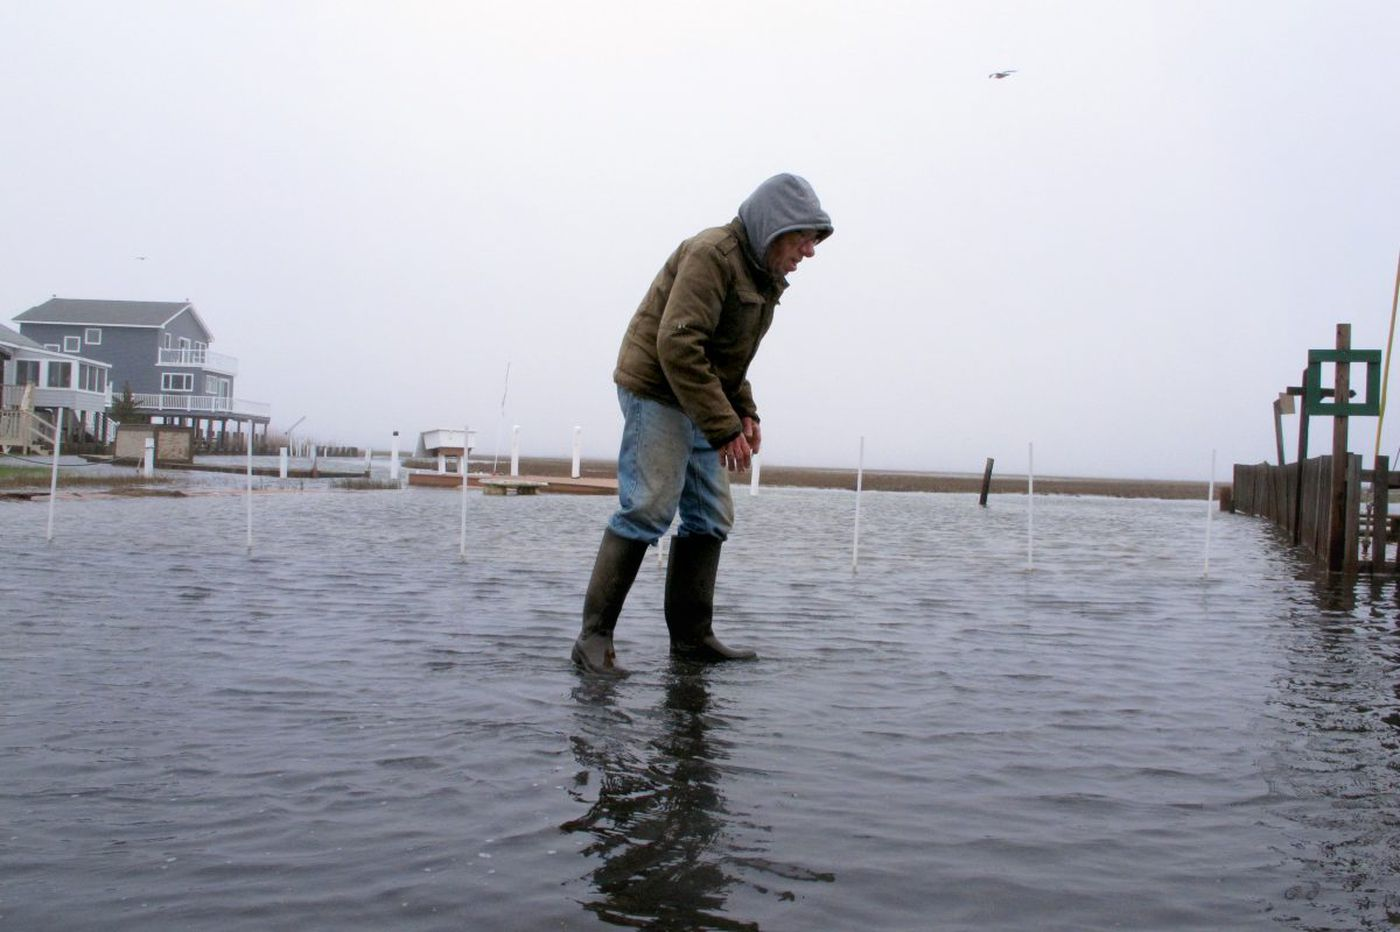 Report: Sea rise means more tidal flooding this year for Jersey Shore